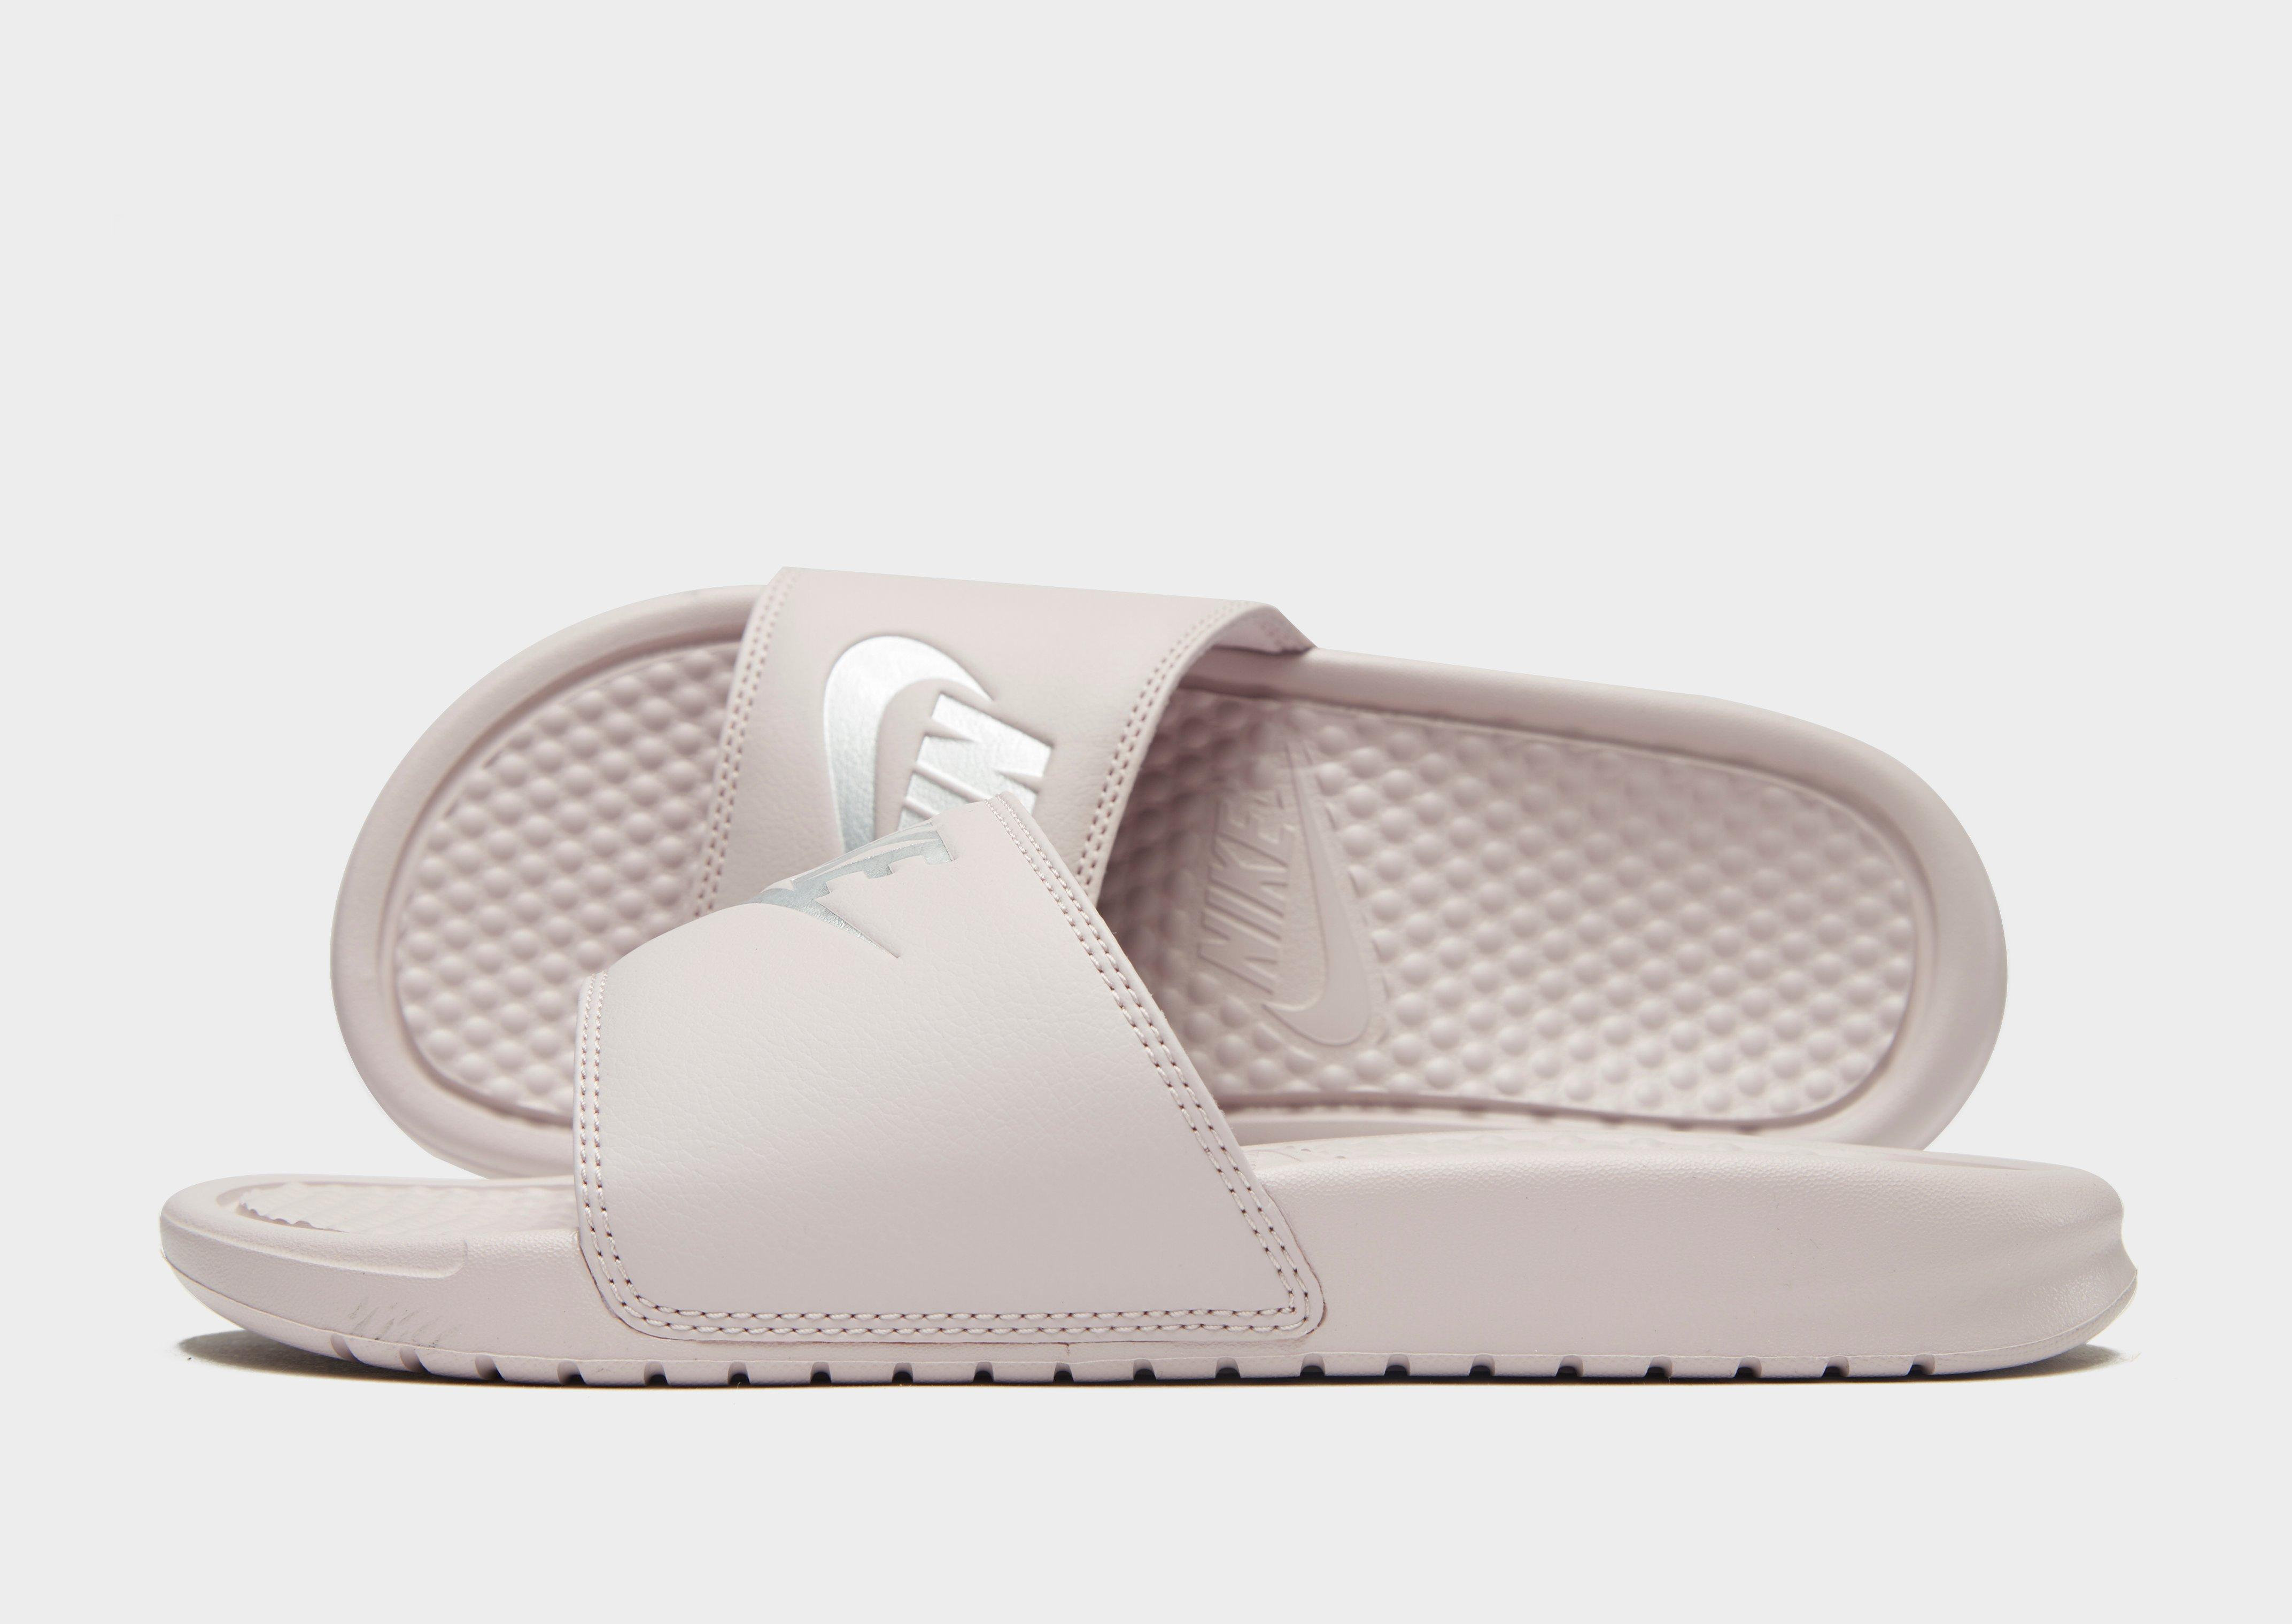 d4e09c63fc52e4 Nike. Women s Pink Benassi Just Do It Slides. £22 From JD Sports